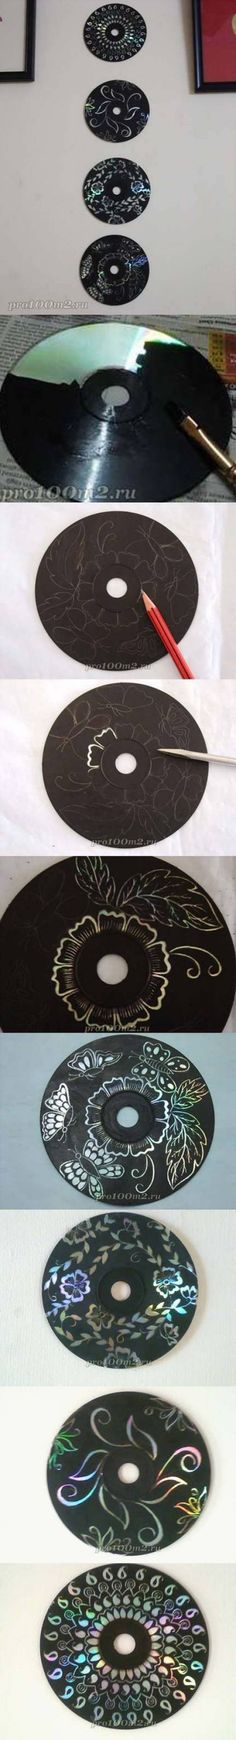 CD Art Recycled CDs - Possible Make & Take SRP prize? Have teen volunteers paint (Monticello volunteer time project? Give painted CD with skewer in ziplock bag as prize. Cd Crafts, Crafts To Do, Crafts For Kids, Arts And Crafts, Teen Crafts, Creative Crafts, Creative Artwork, Art Cd, Recycled Cds